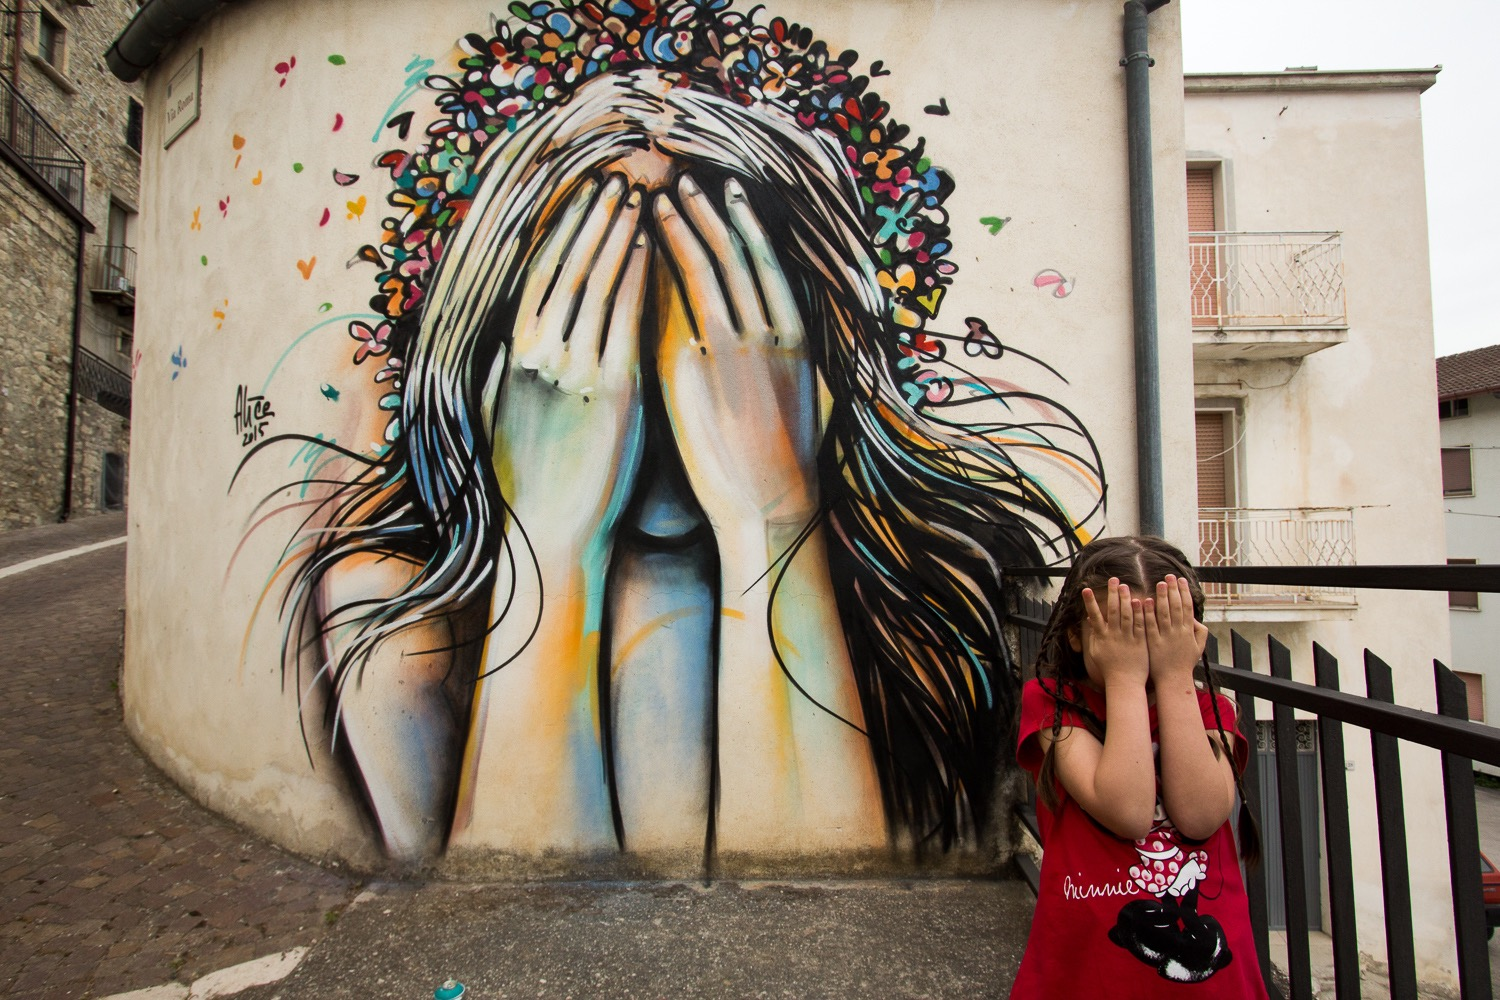 Street Art by Alice Pasquini in Civitacampomarano, Molise, Italy. Photo by Jessica Stewart 1